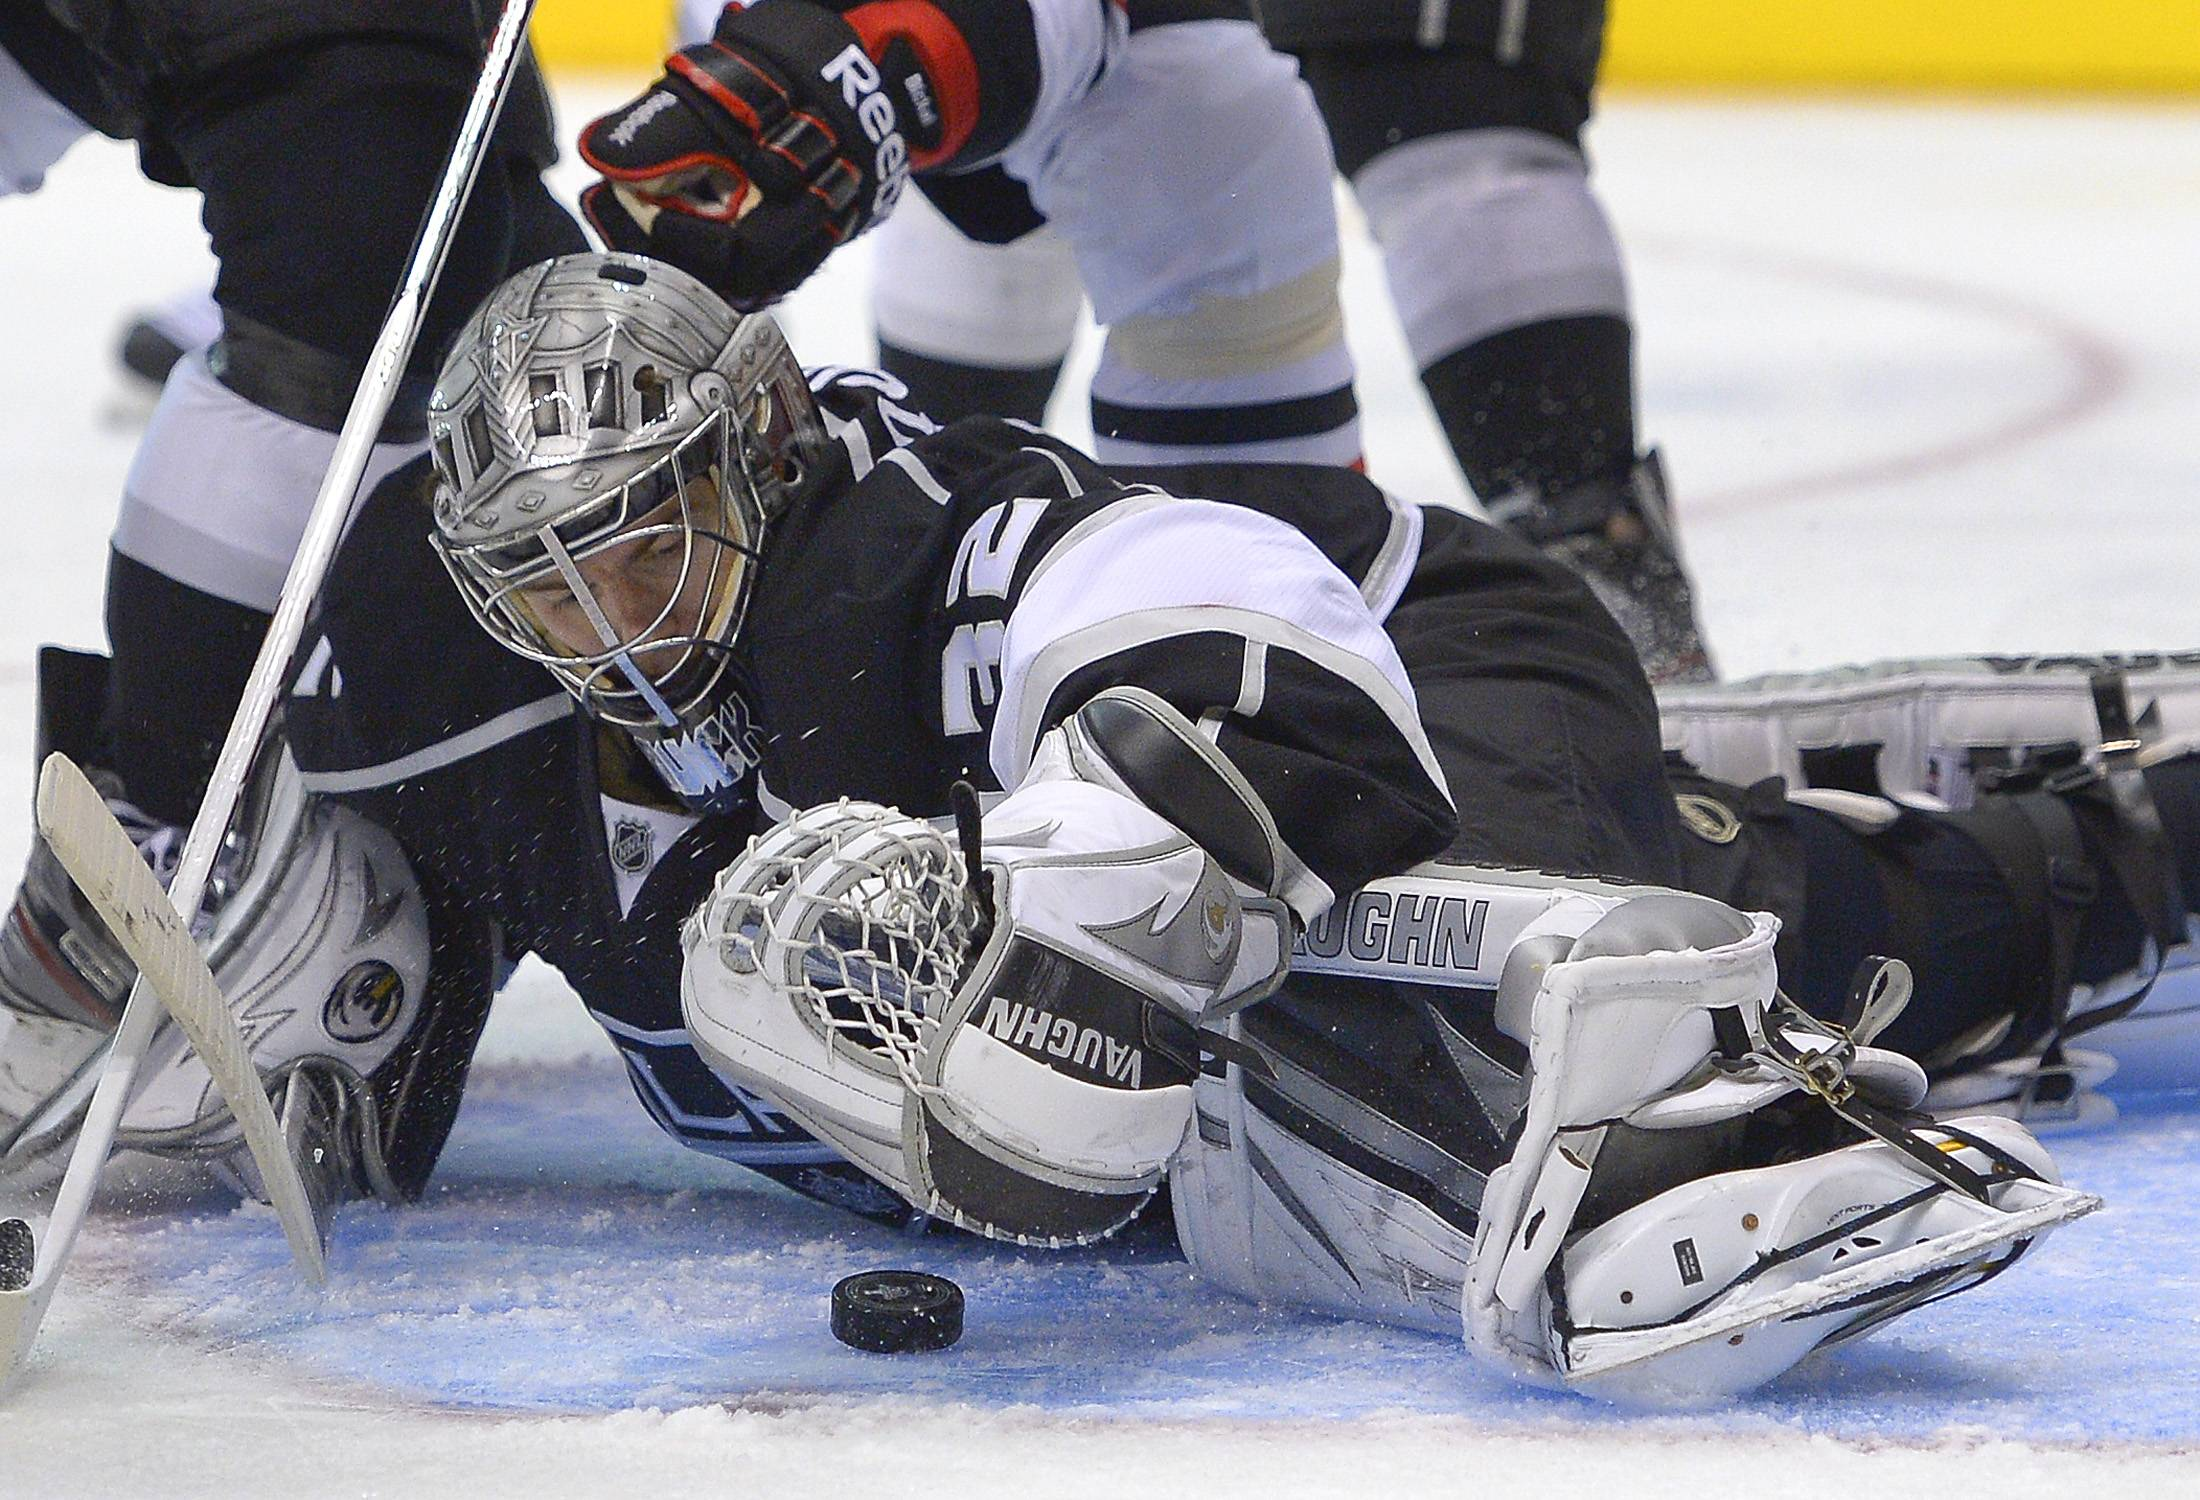 Los Angeles Kings goalie Jonathan Quick (32) smothers the puck during the third period against the Chicago Blackhawks in Game 3 of the NHL hockey Stanley Cup playoffs Western Conference finals, Tuesday, June 4, 2013, in Los Angeles.